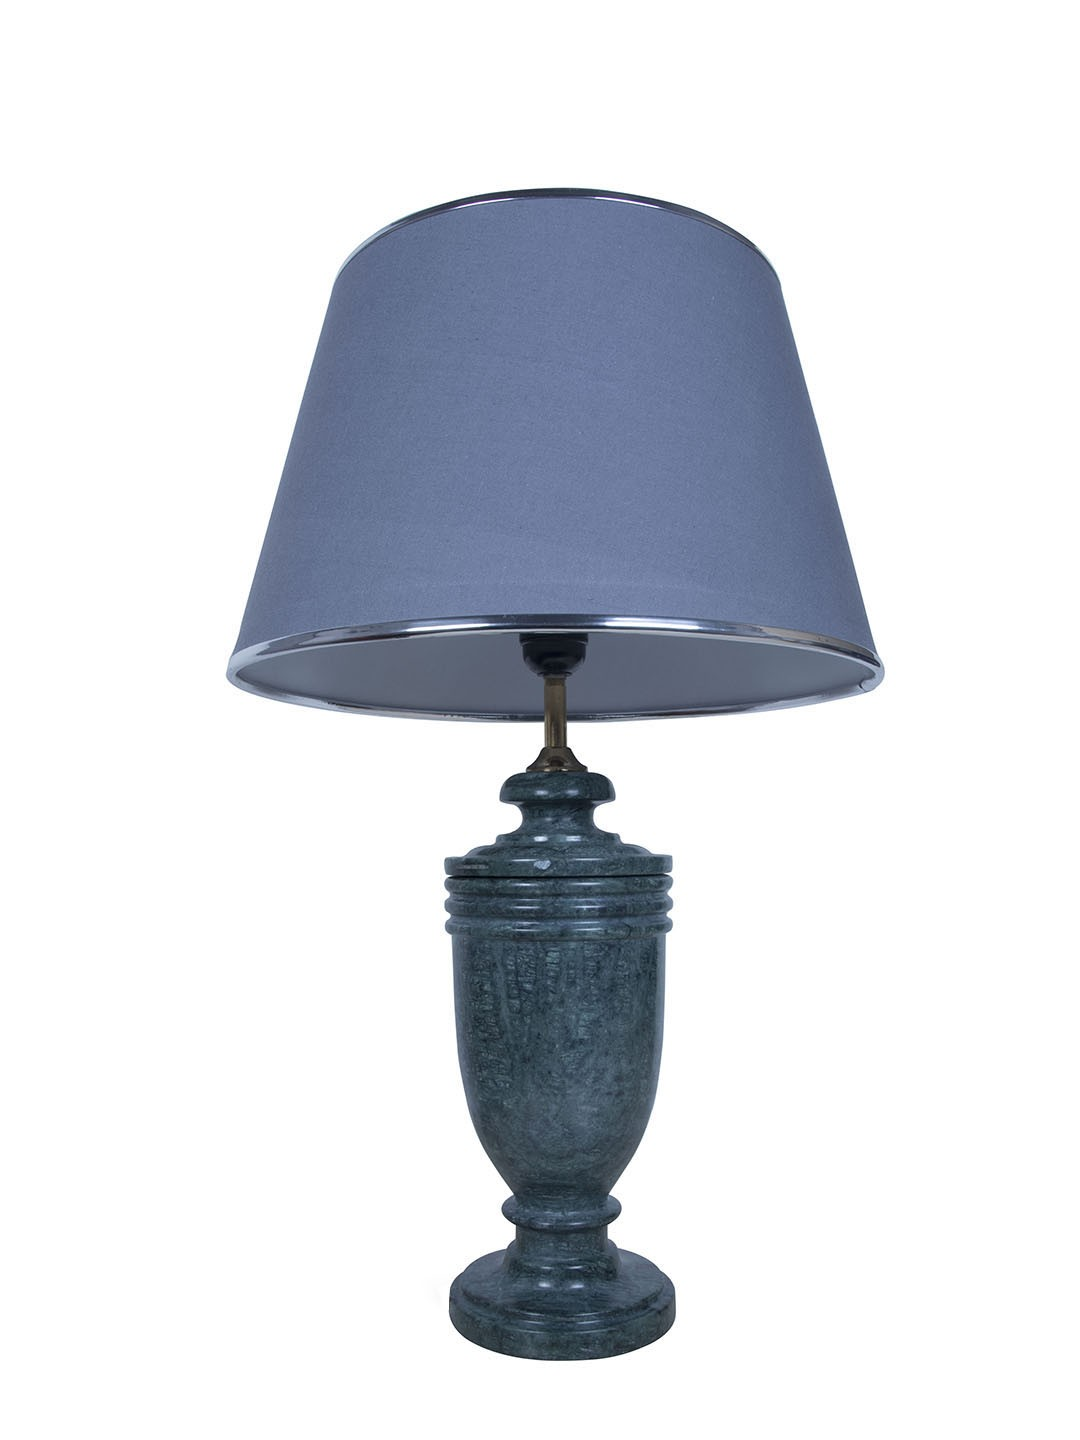 Green Marble Trophy Table Lamp with Chrome Grey Shade